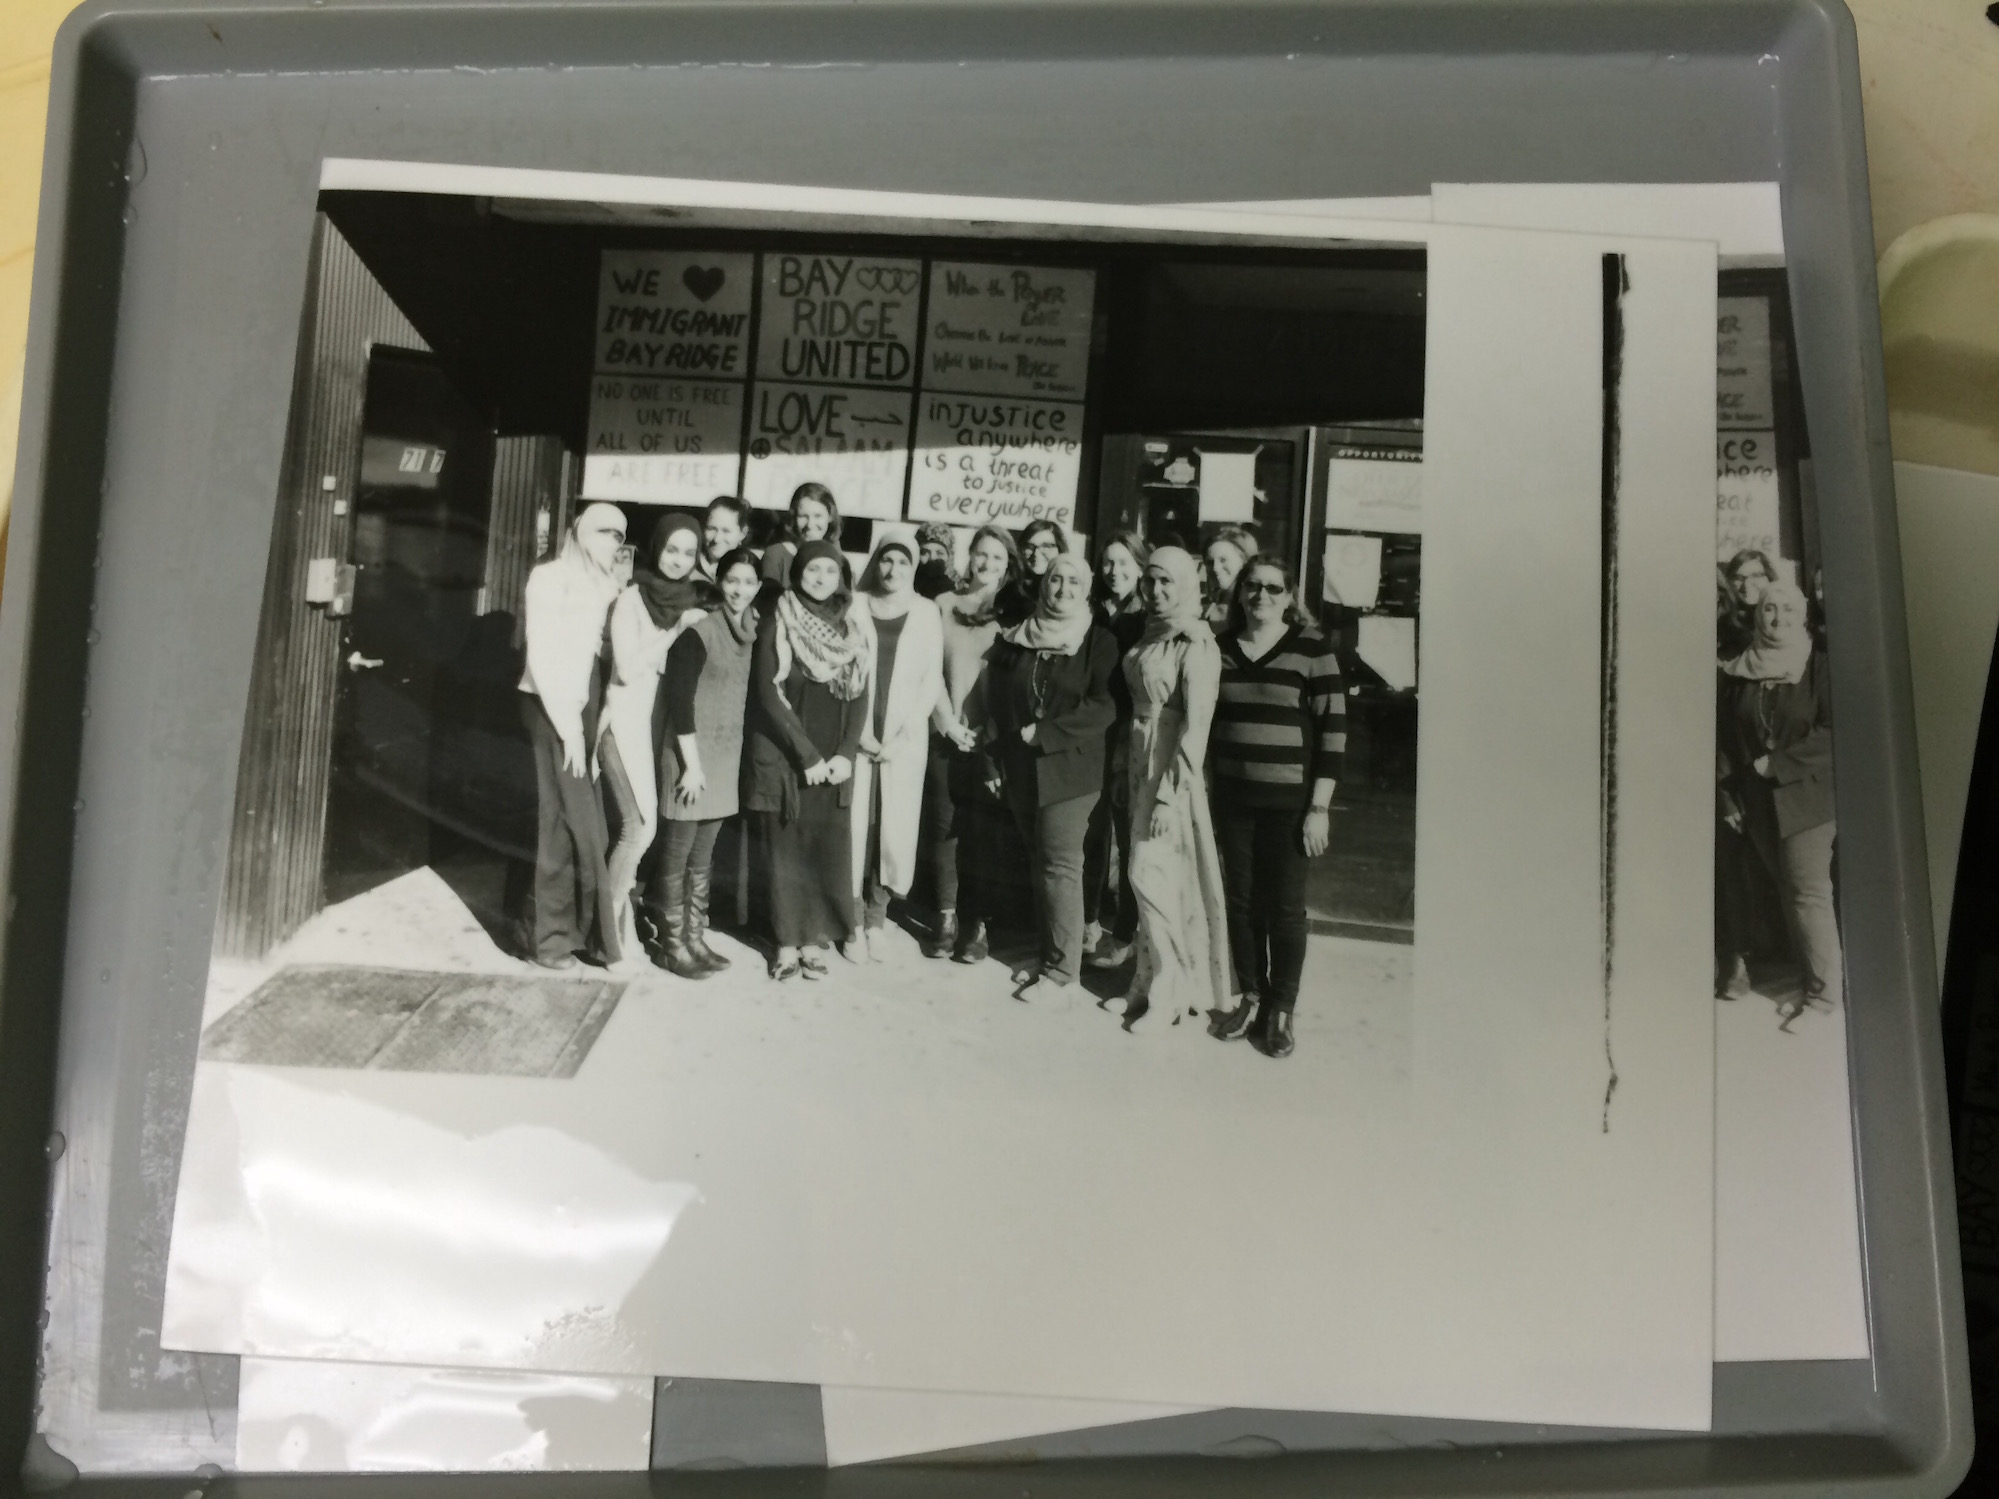 Darkroom: Getting closer. The girl on the far left needs to be burned in. Her shirt is pure white, making the photo very unbalanced